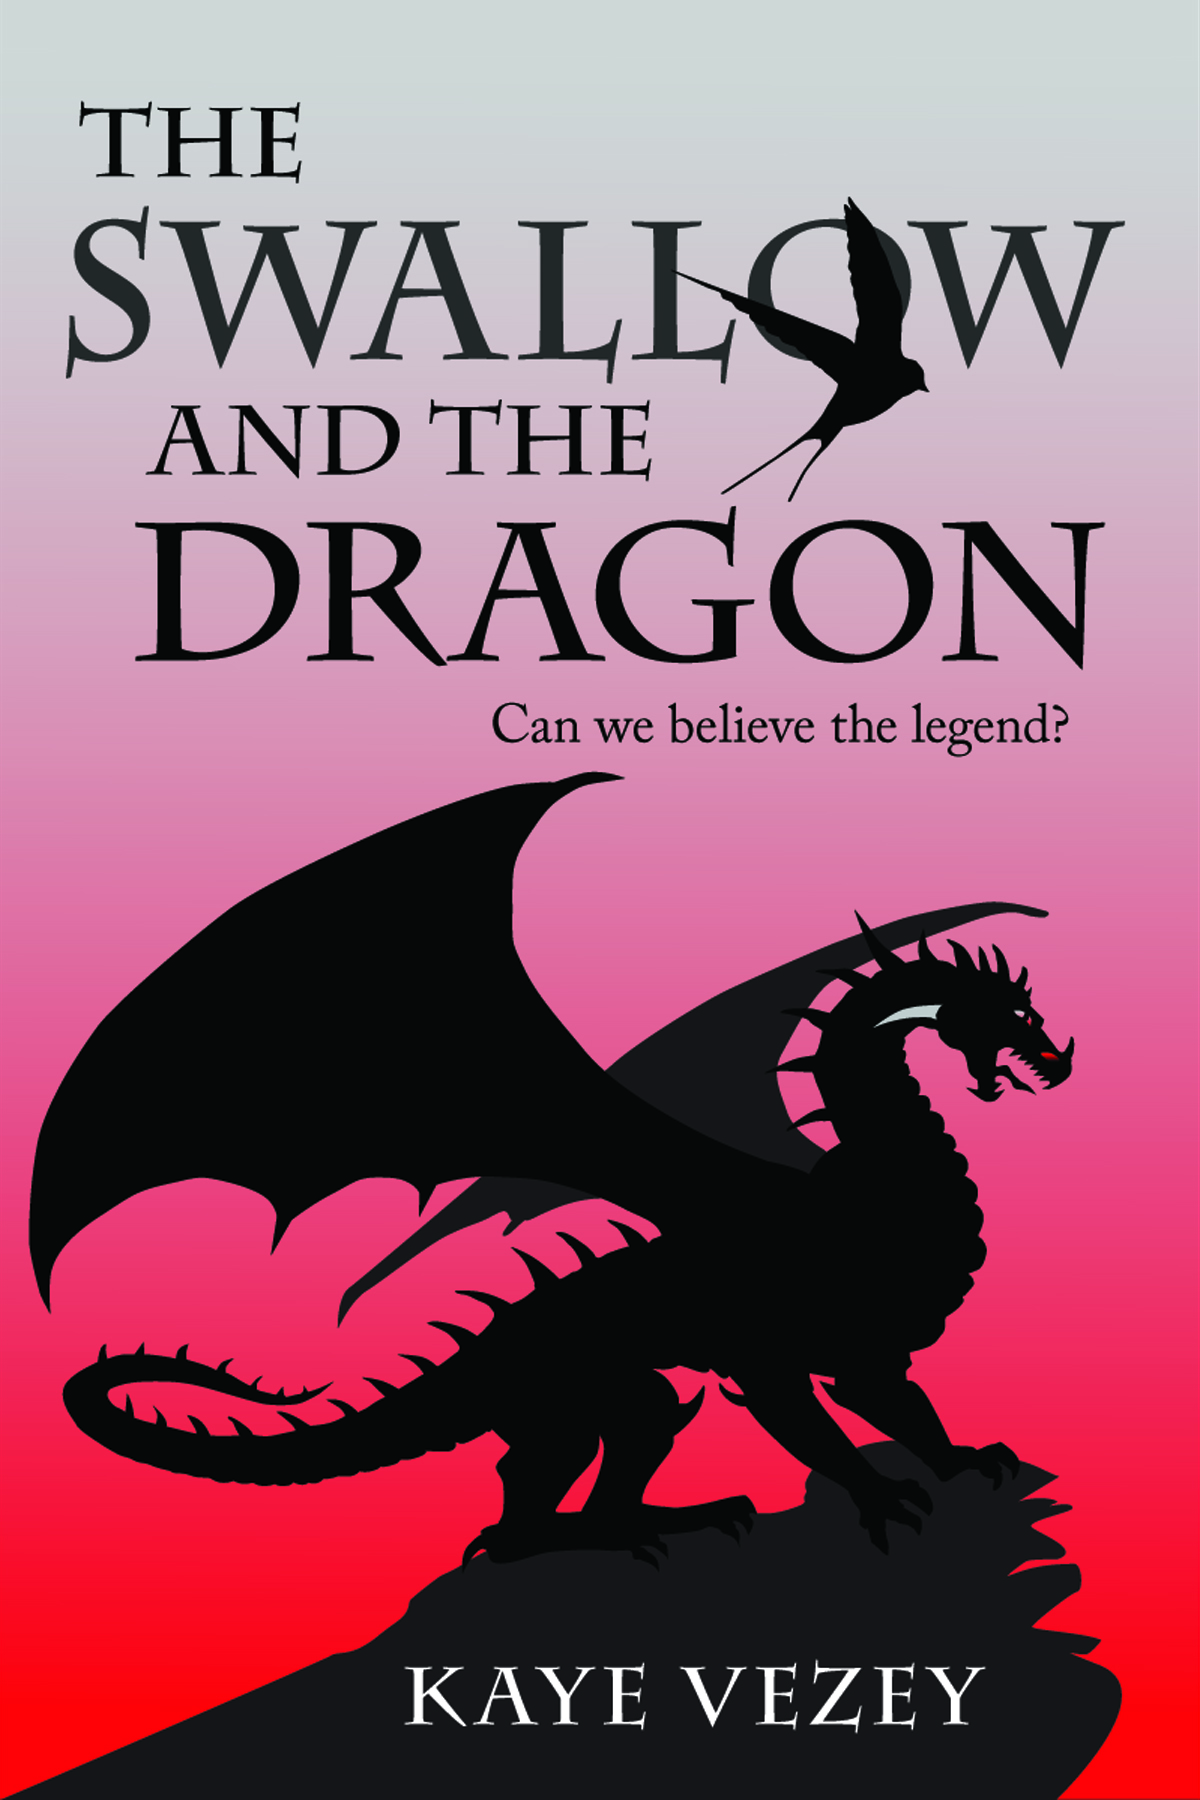 Swallow and the Dragon